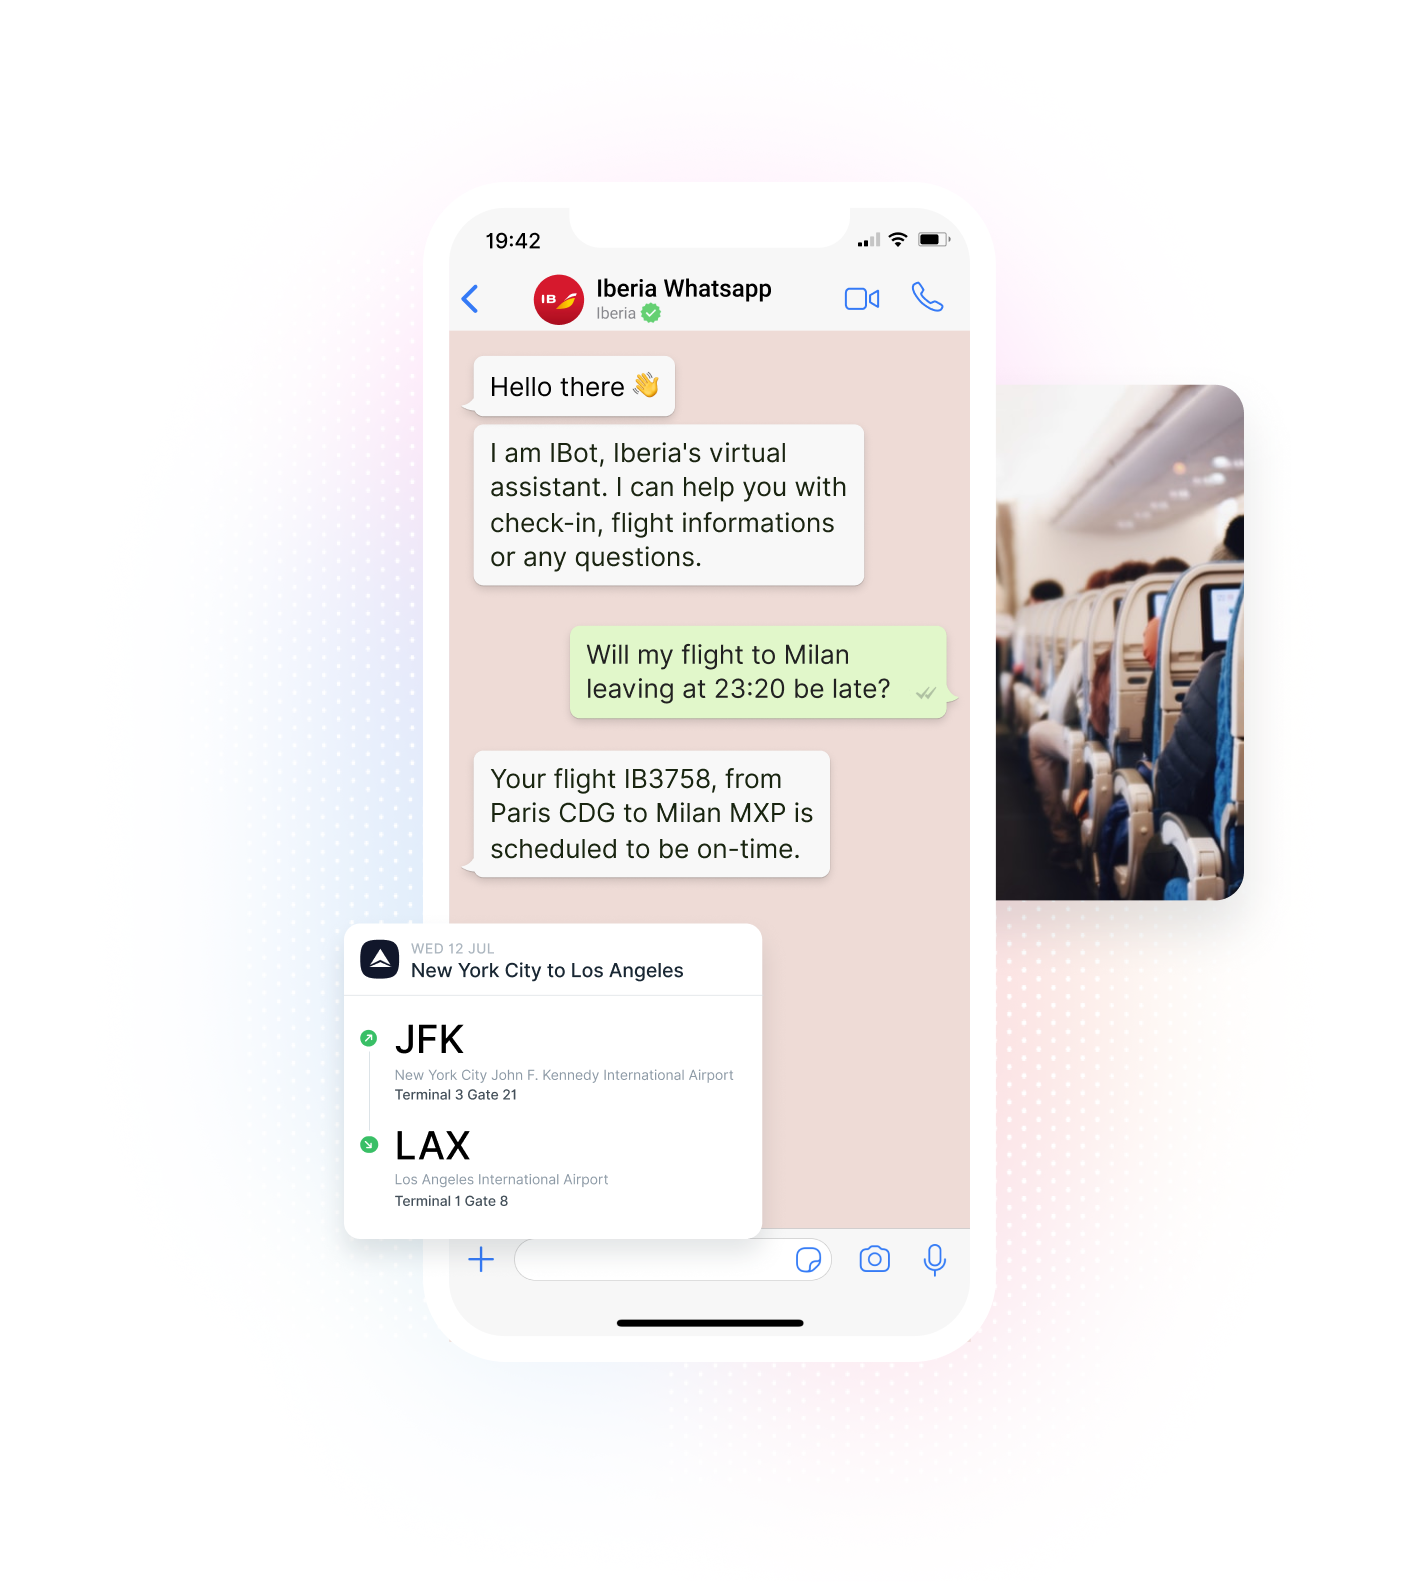 Iberia WhatsApp Chatbot, Flight Plan, and Airplane Cabin